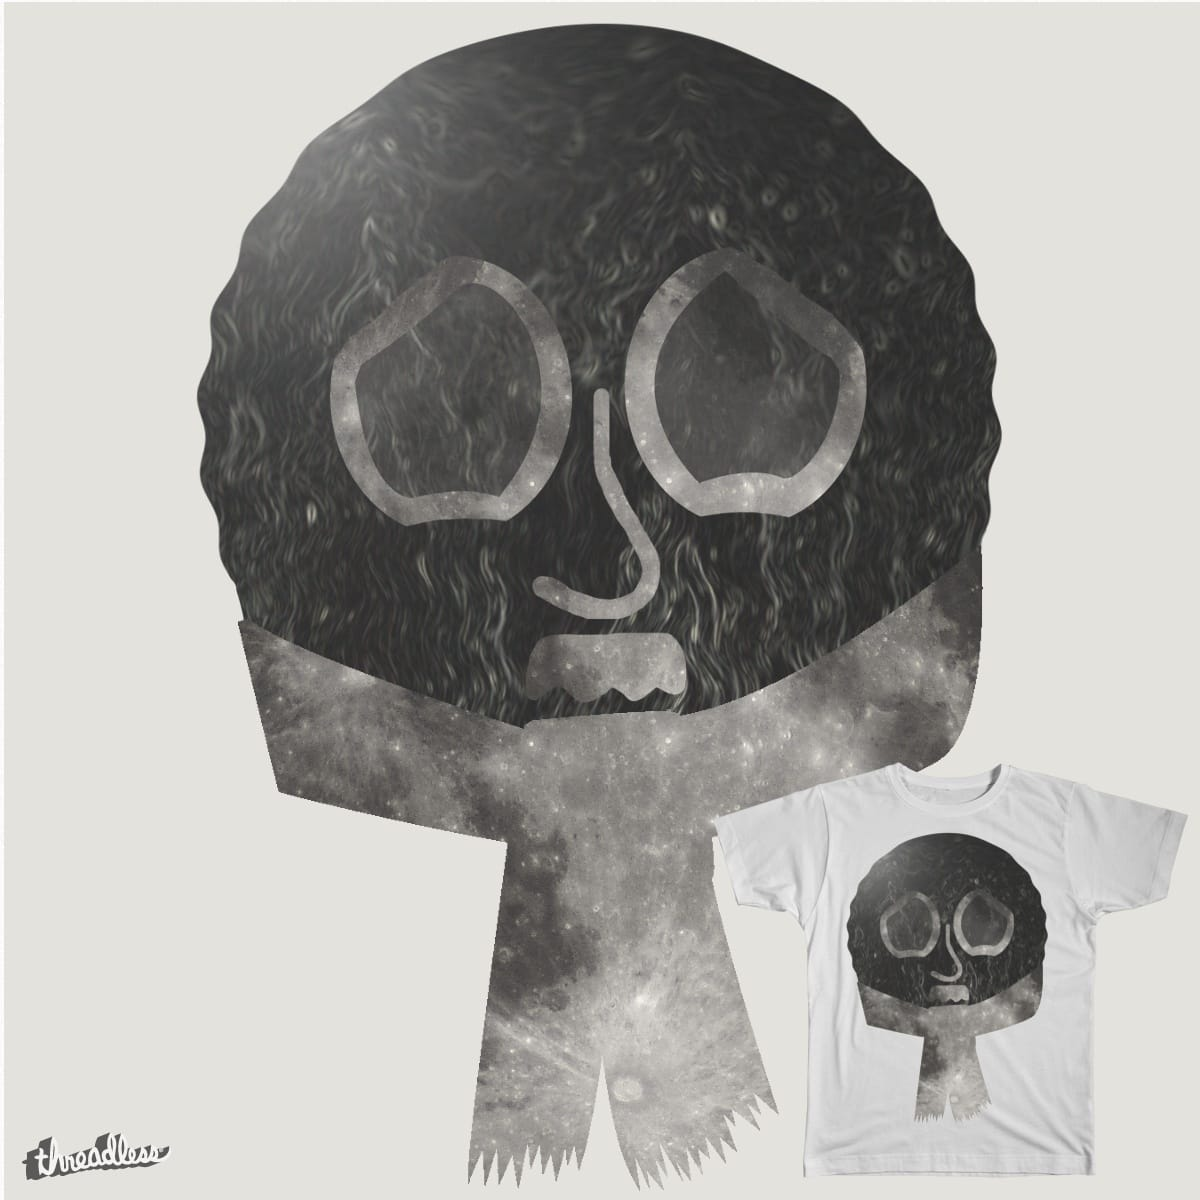 The lonely moon by SirJamieCross on Threadless